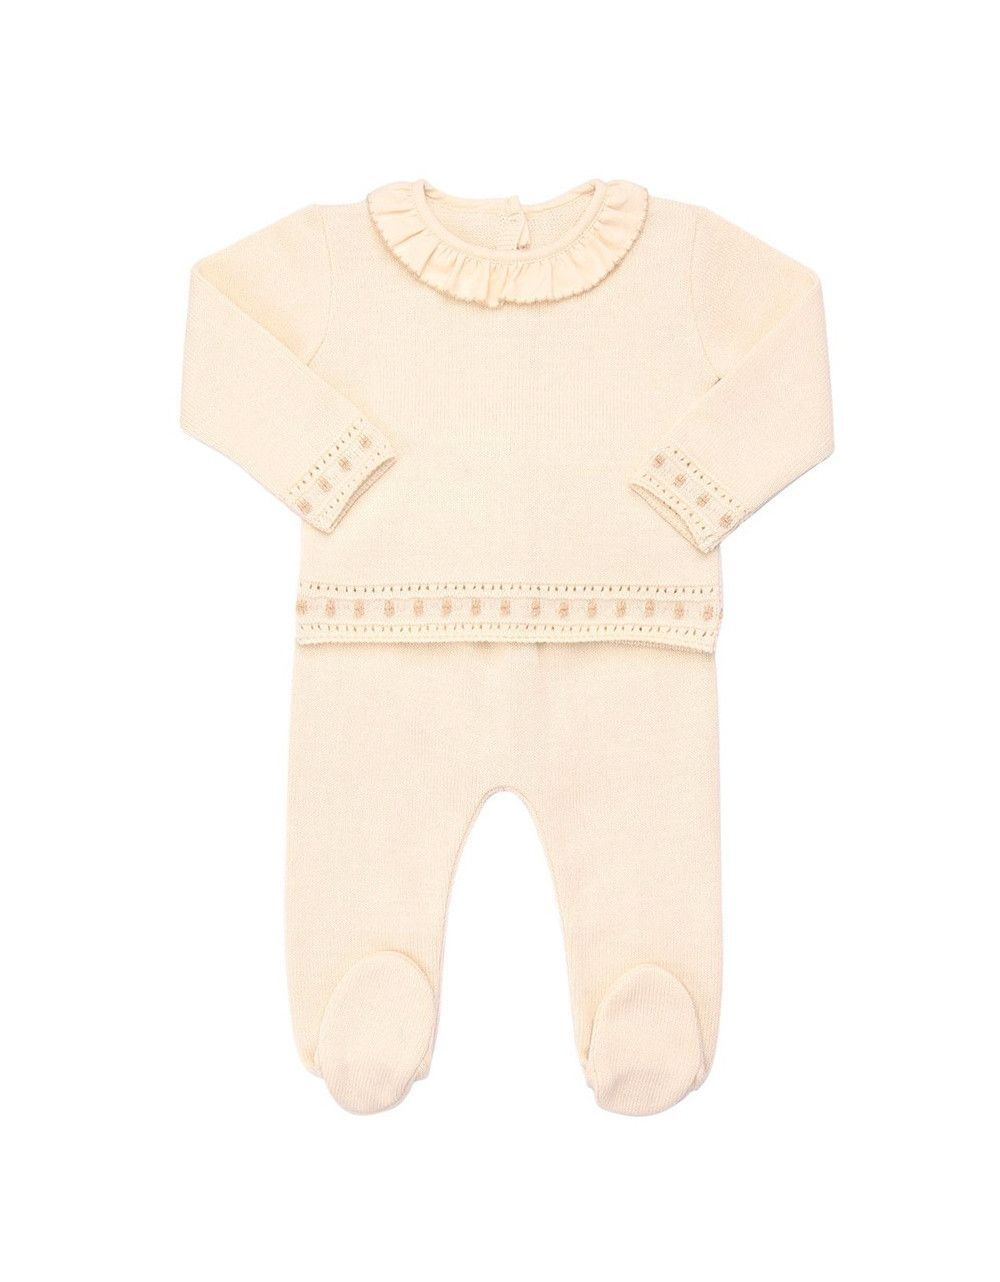 f653cc66a604 NATURAPURA Two-piece Knitted Baby Set with ruffled Collar ...